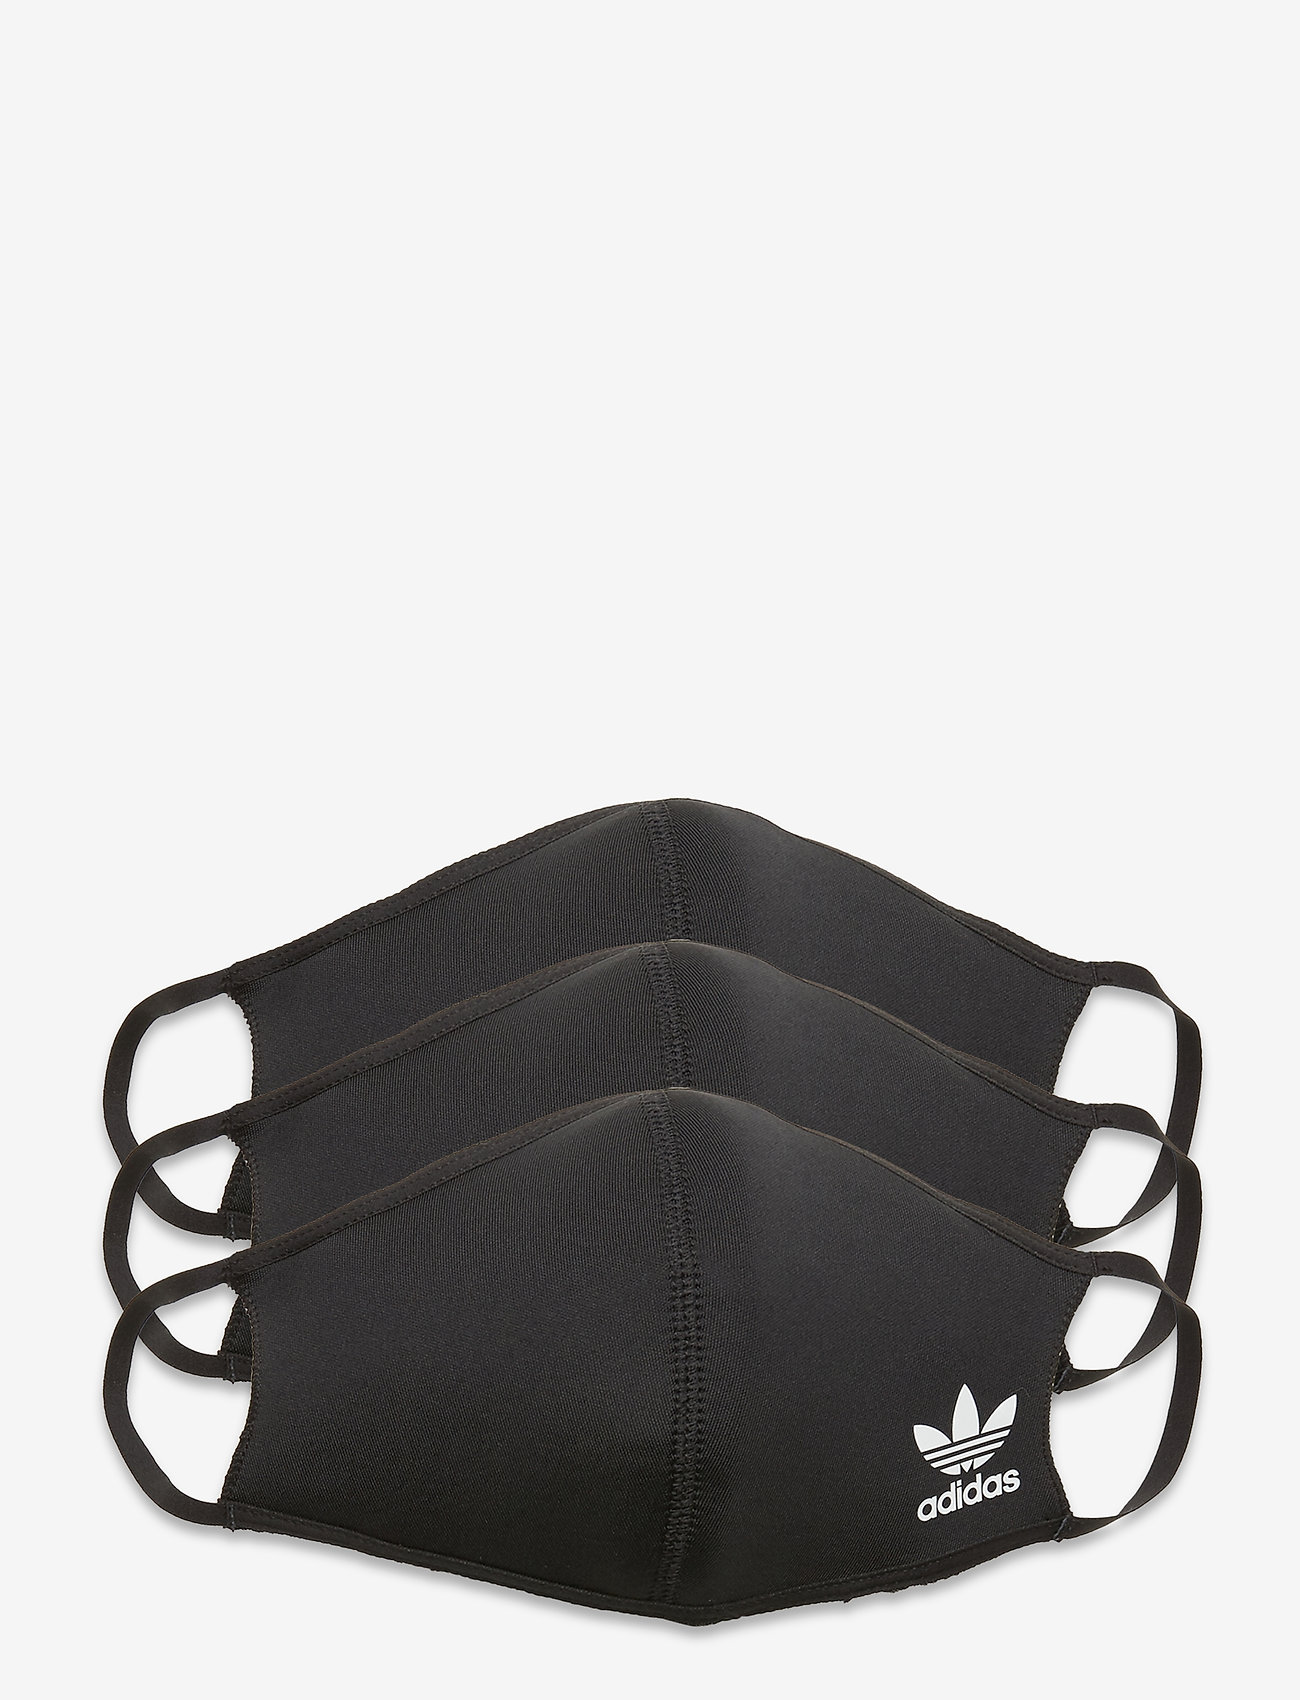 adidas Performance - FACE CVR M/L - gezicht maskers - black/white - 0